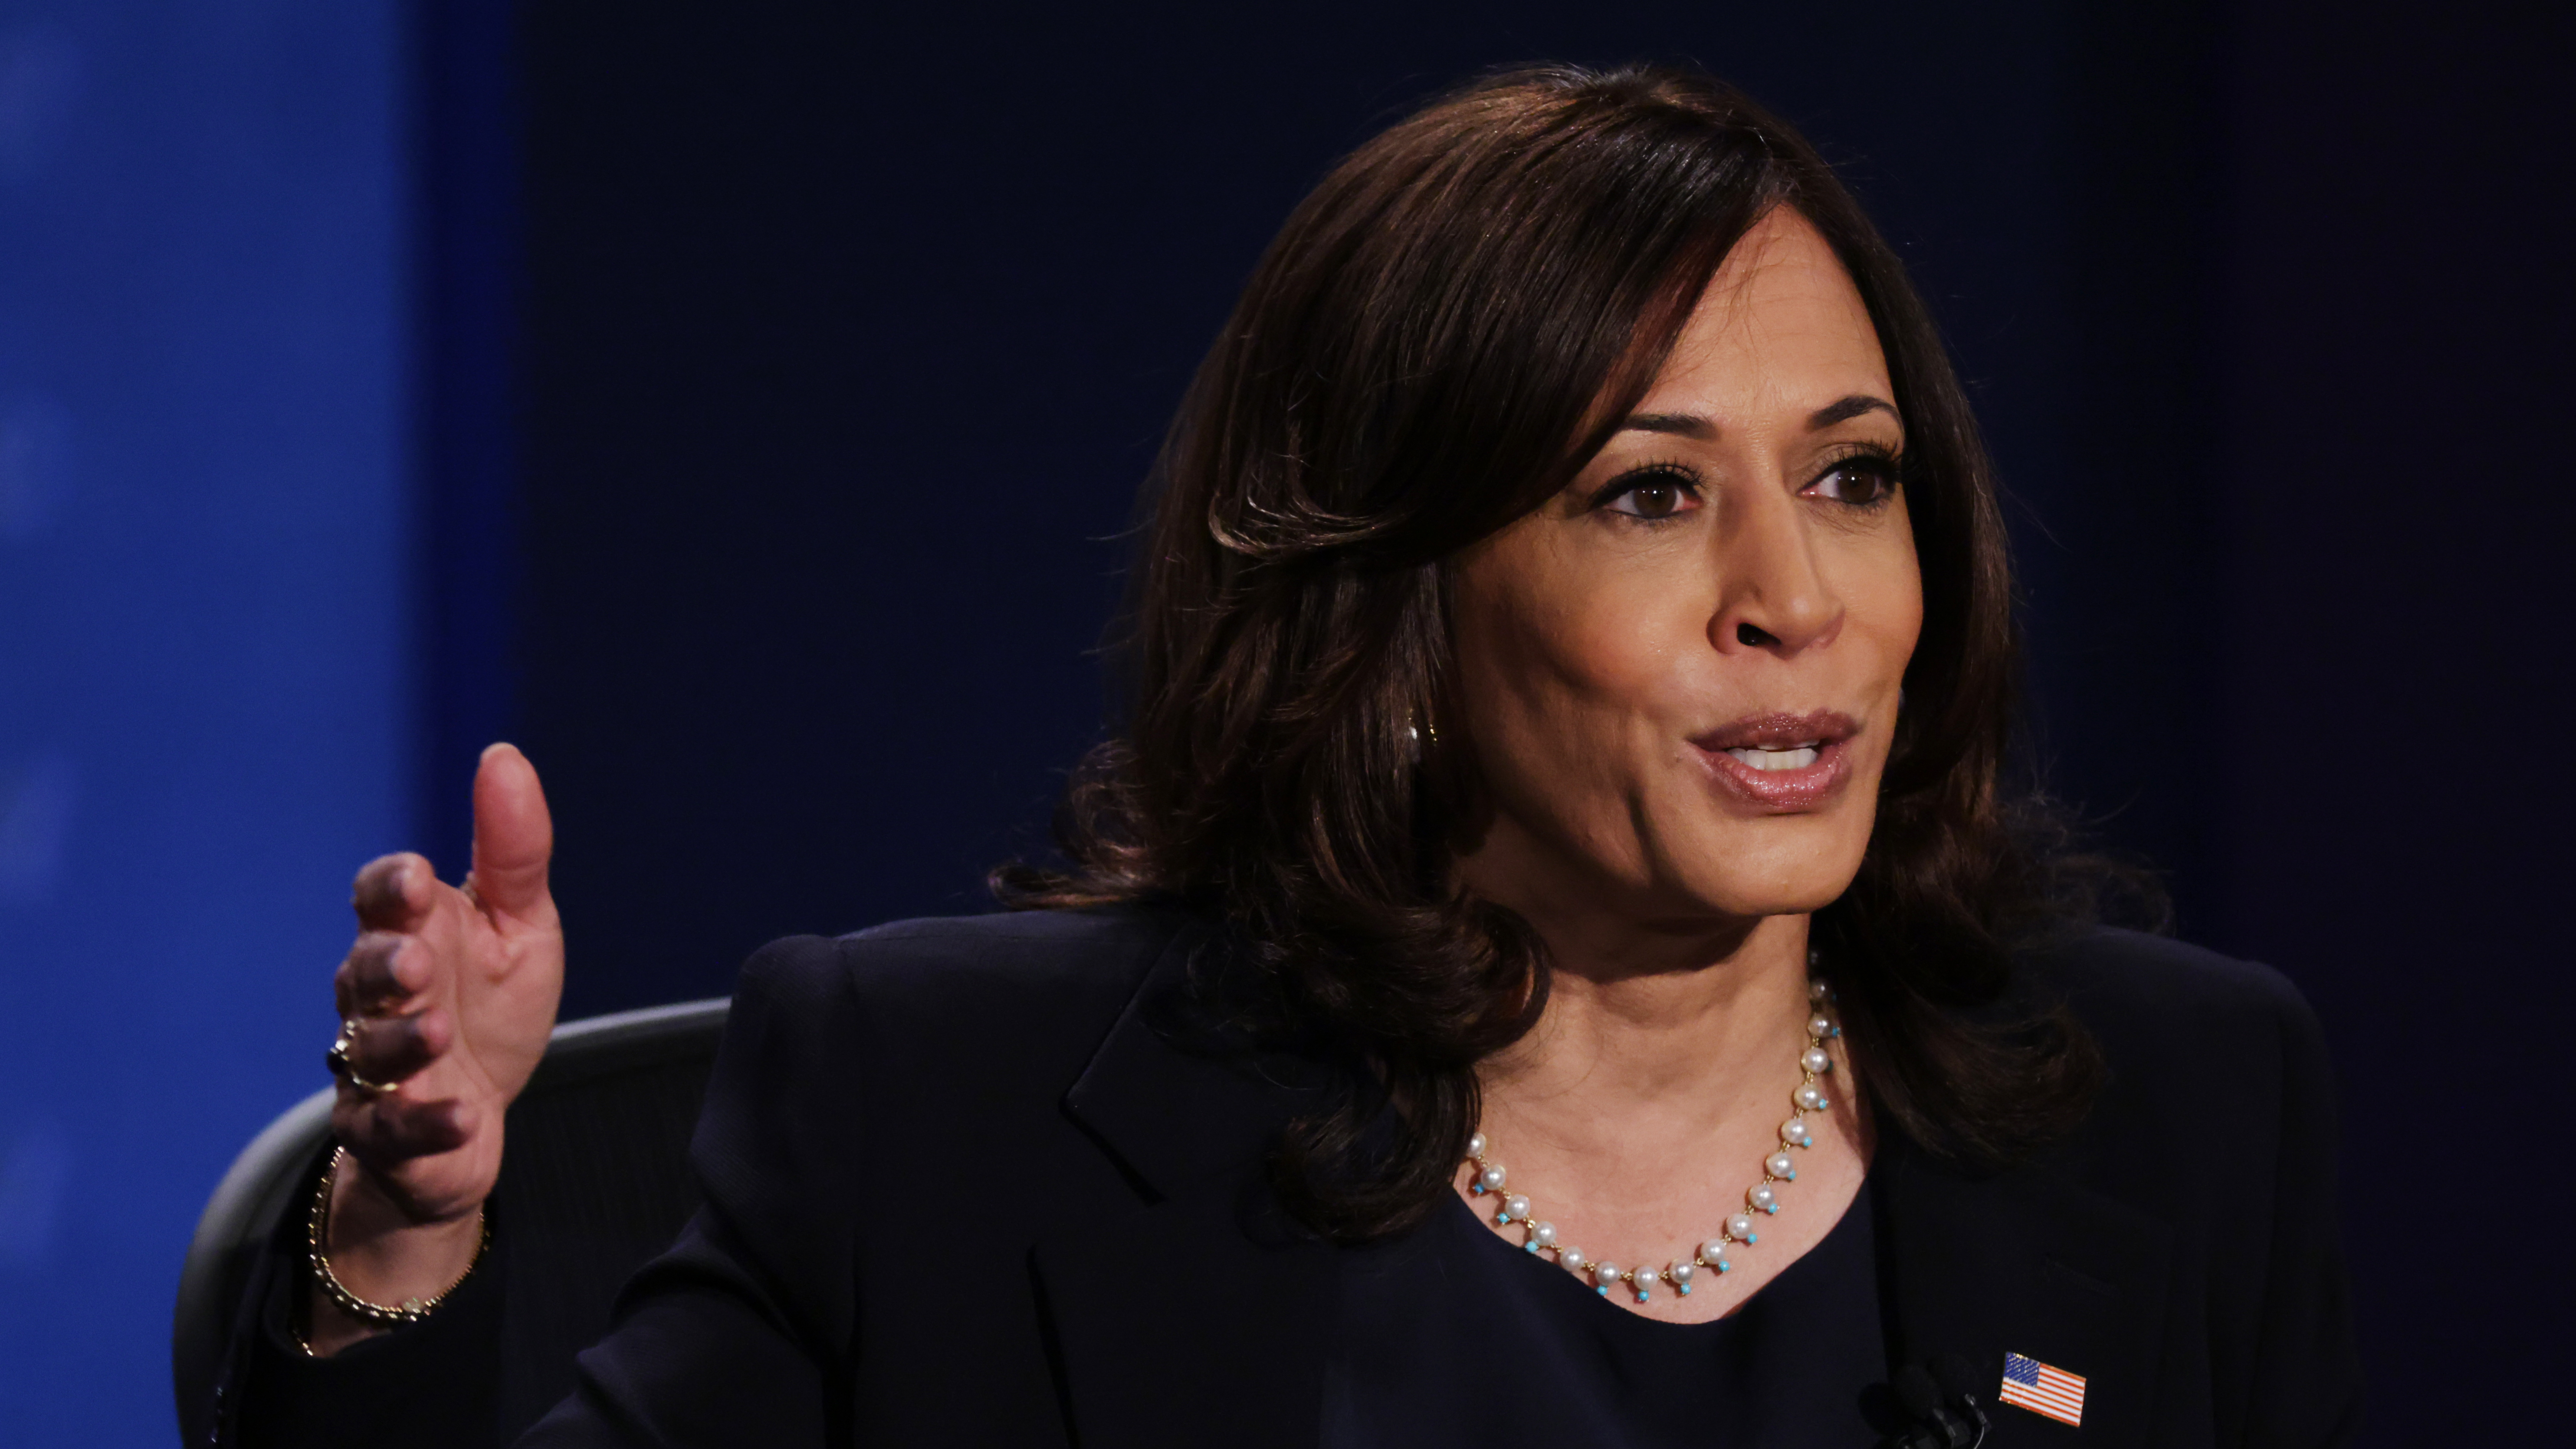 Democratic vice presidential nominee and California Sen. Kamala Harris, seen here during the Oct. 7 vice presidential debate, is postponing in-person campaign events after two people traveling with her tested positive for the coronavirus.